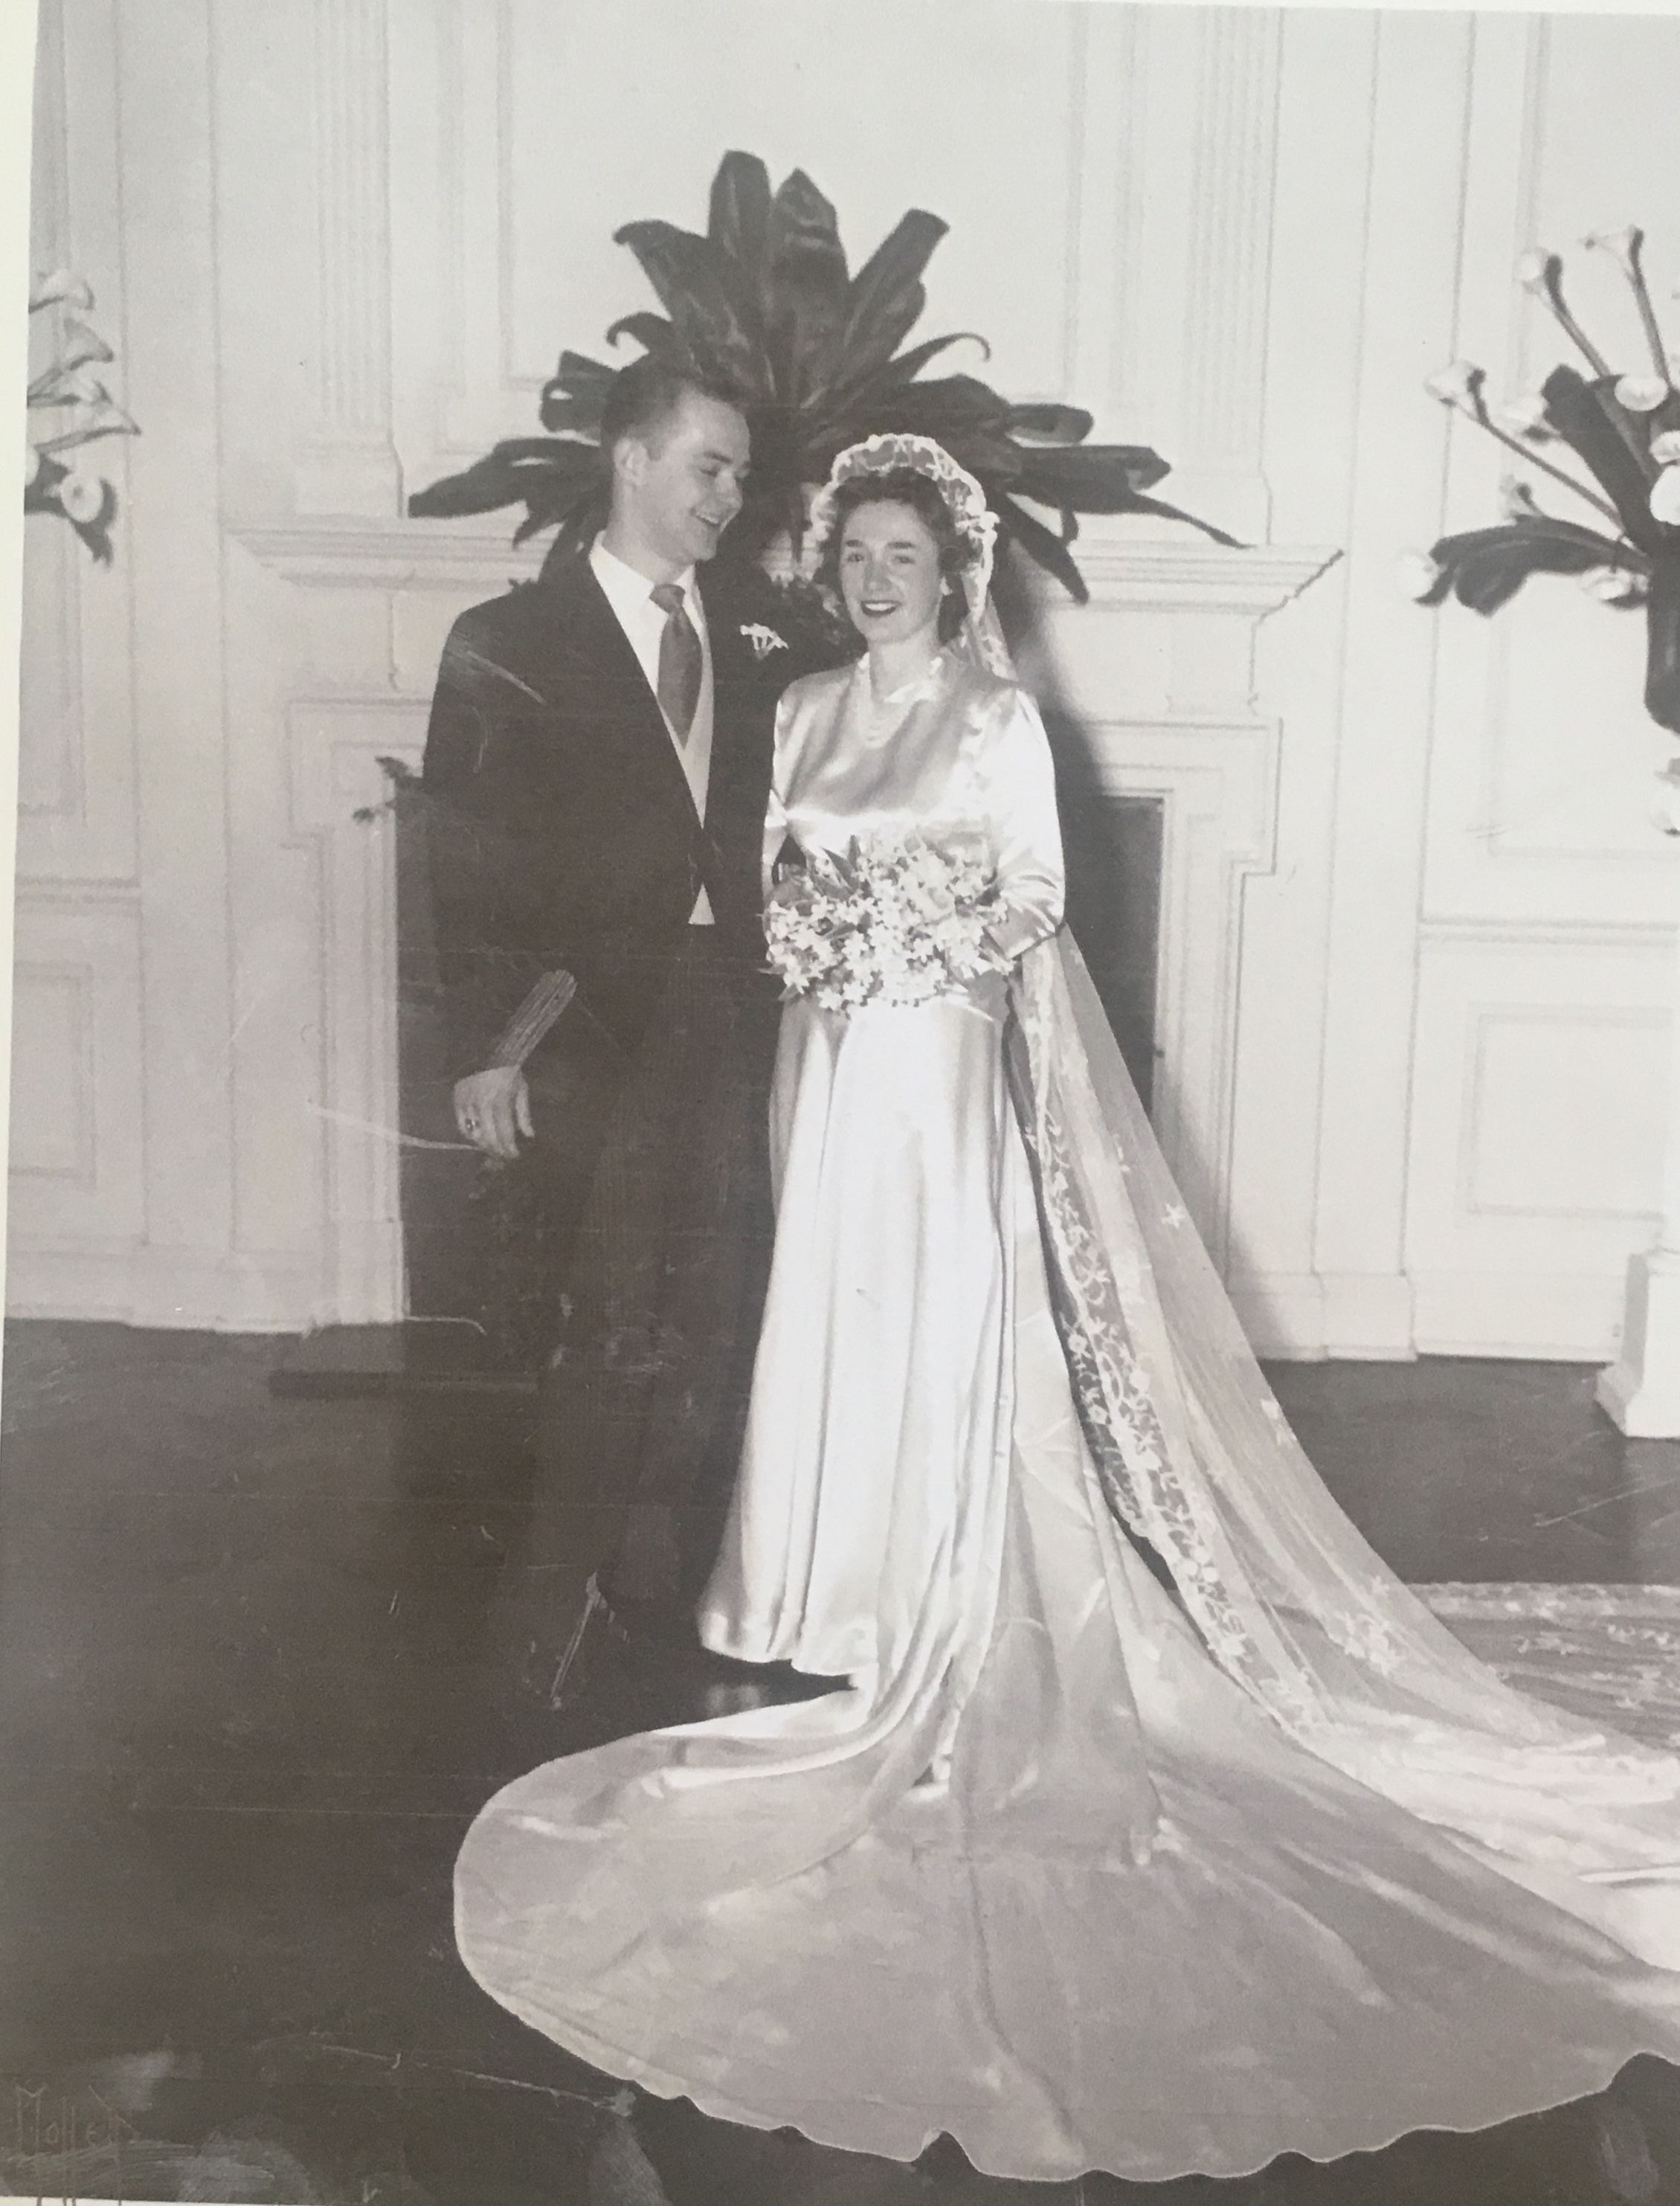 Caroline Browning and her husband, Web, on their wedding day